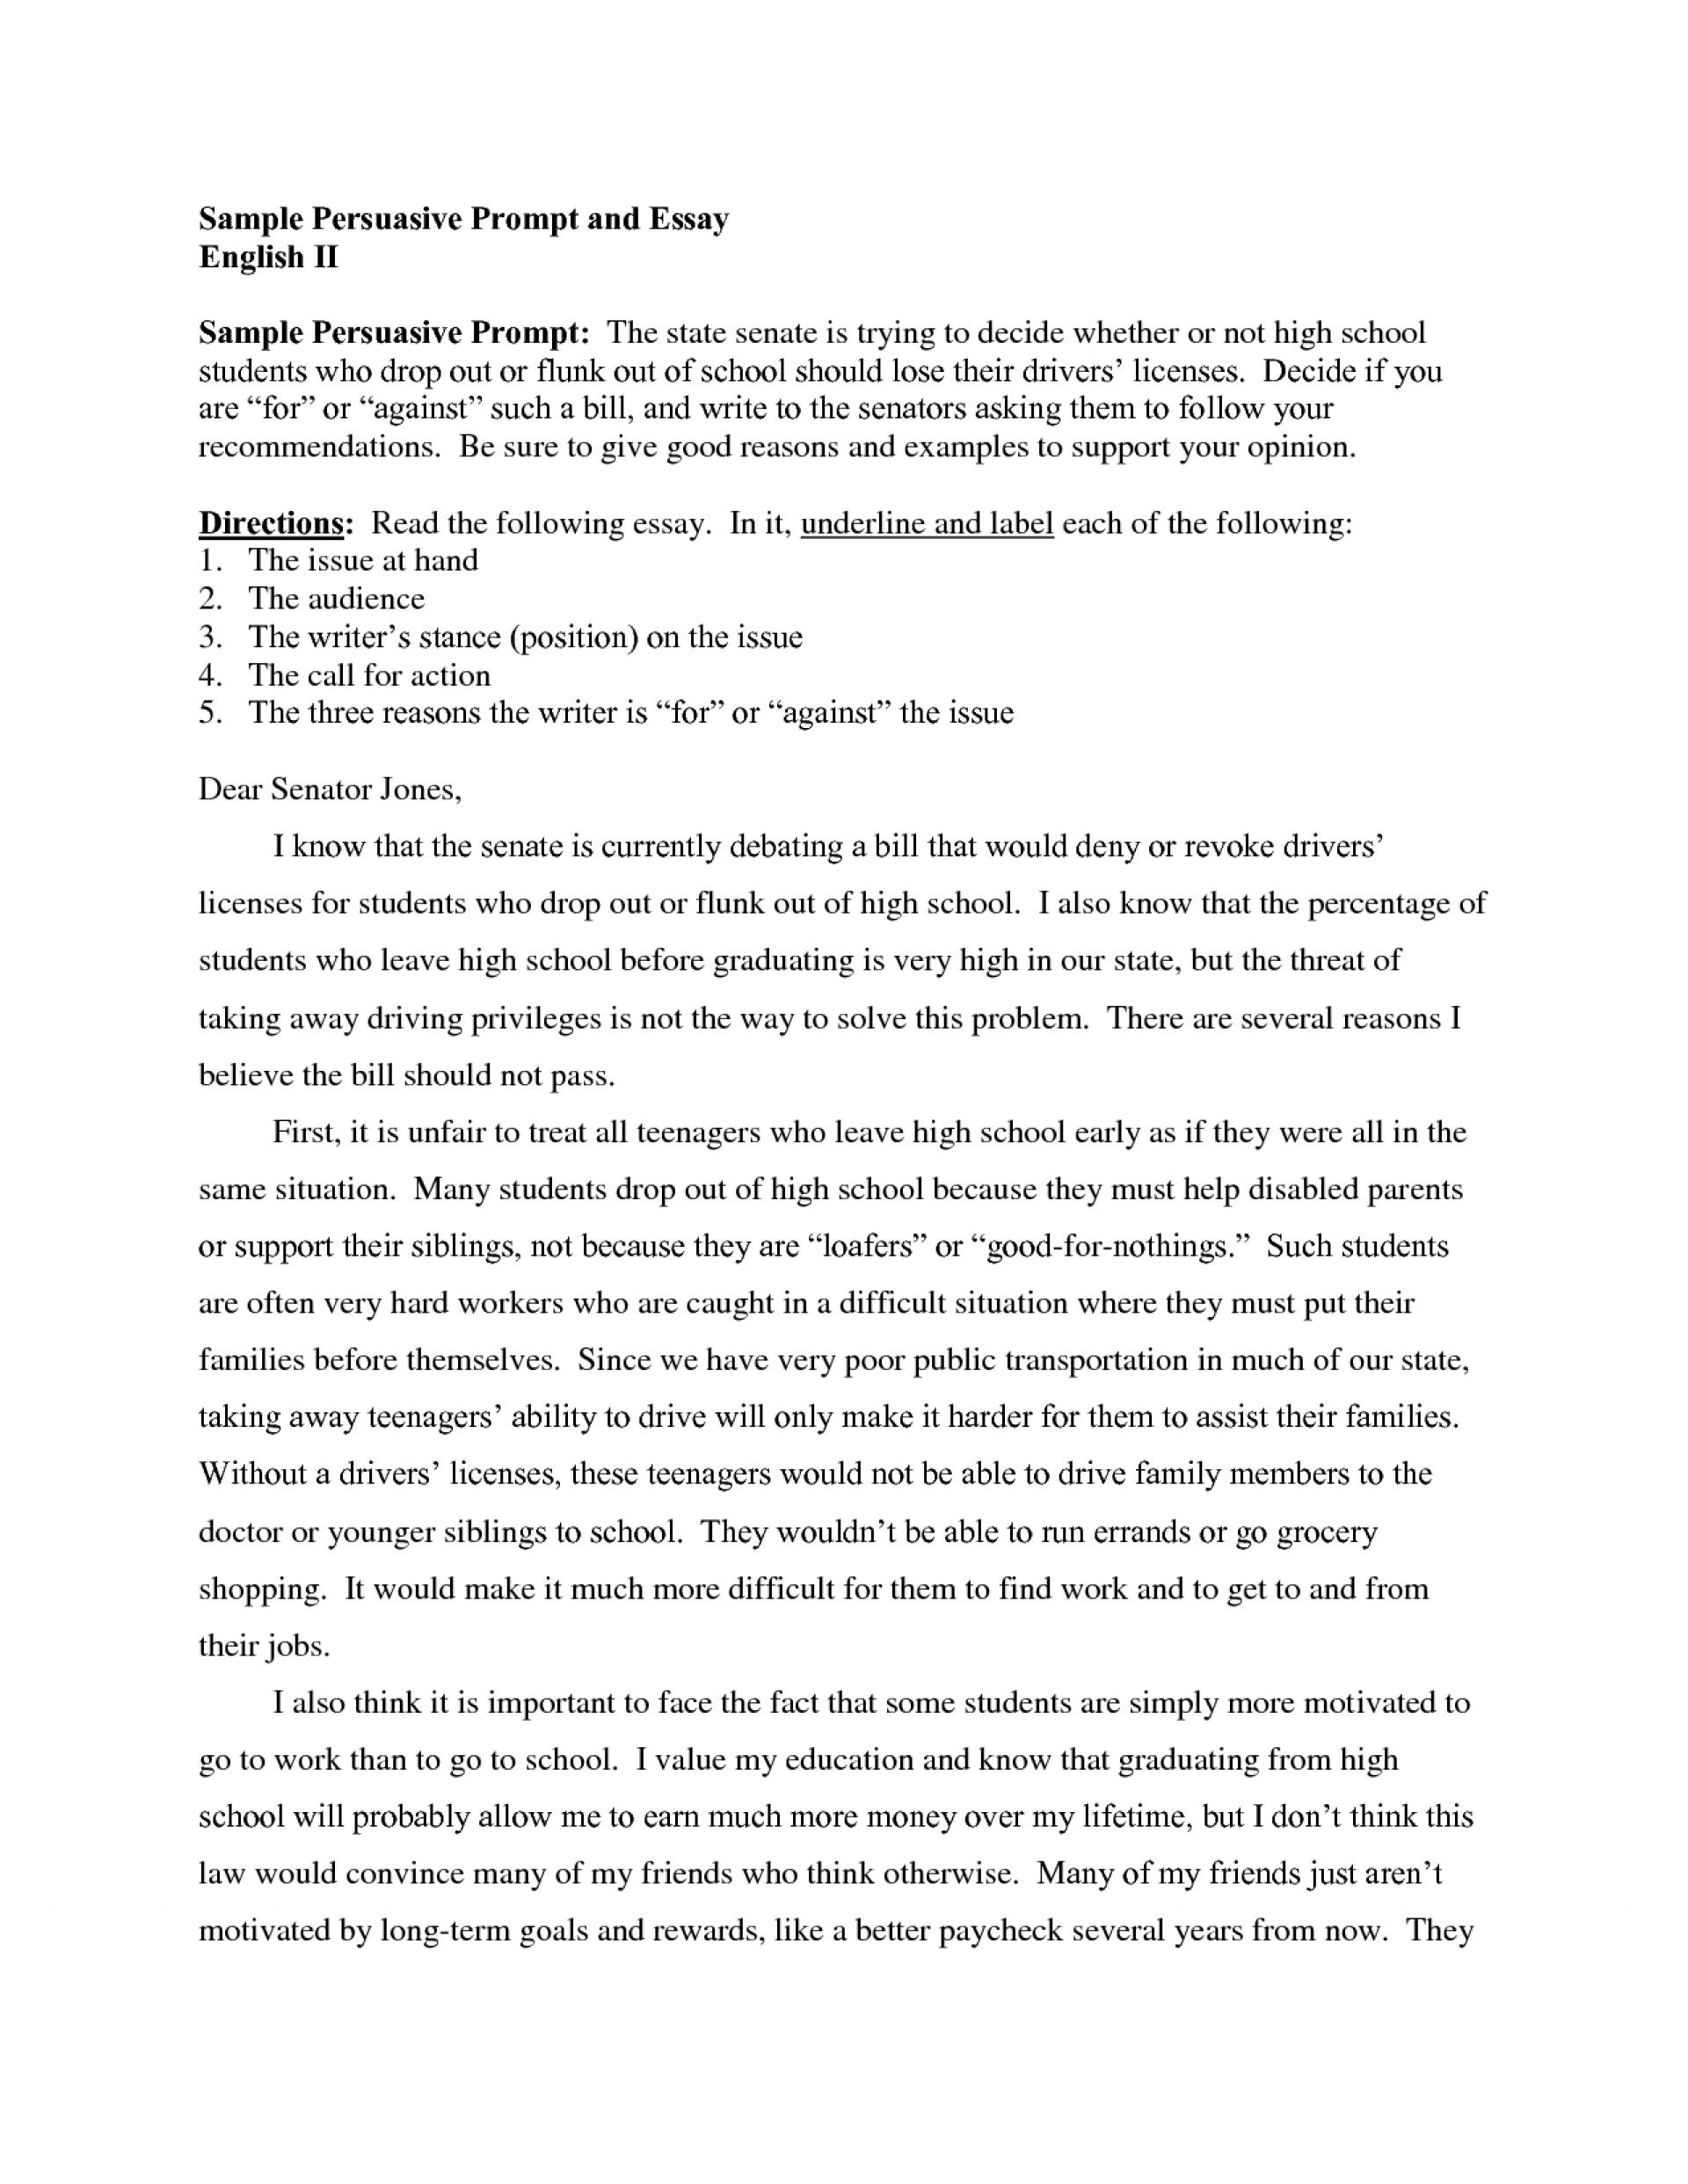 Essay Examples For High School  Jane Eyre Essay Thesis also English Essay About Environment  Persuasive Essay Topics For High School Sample Ideas  Essay On Healthy Living